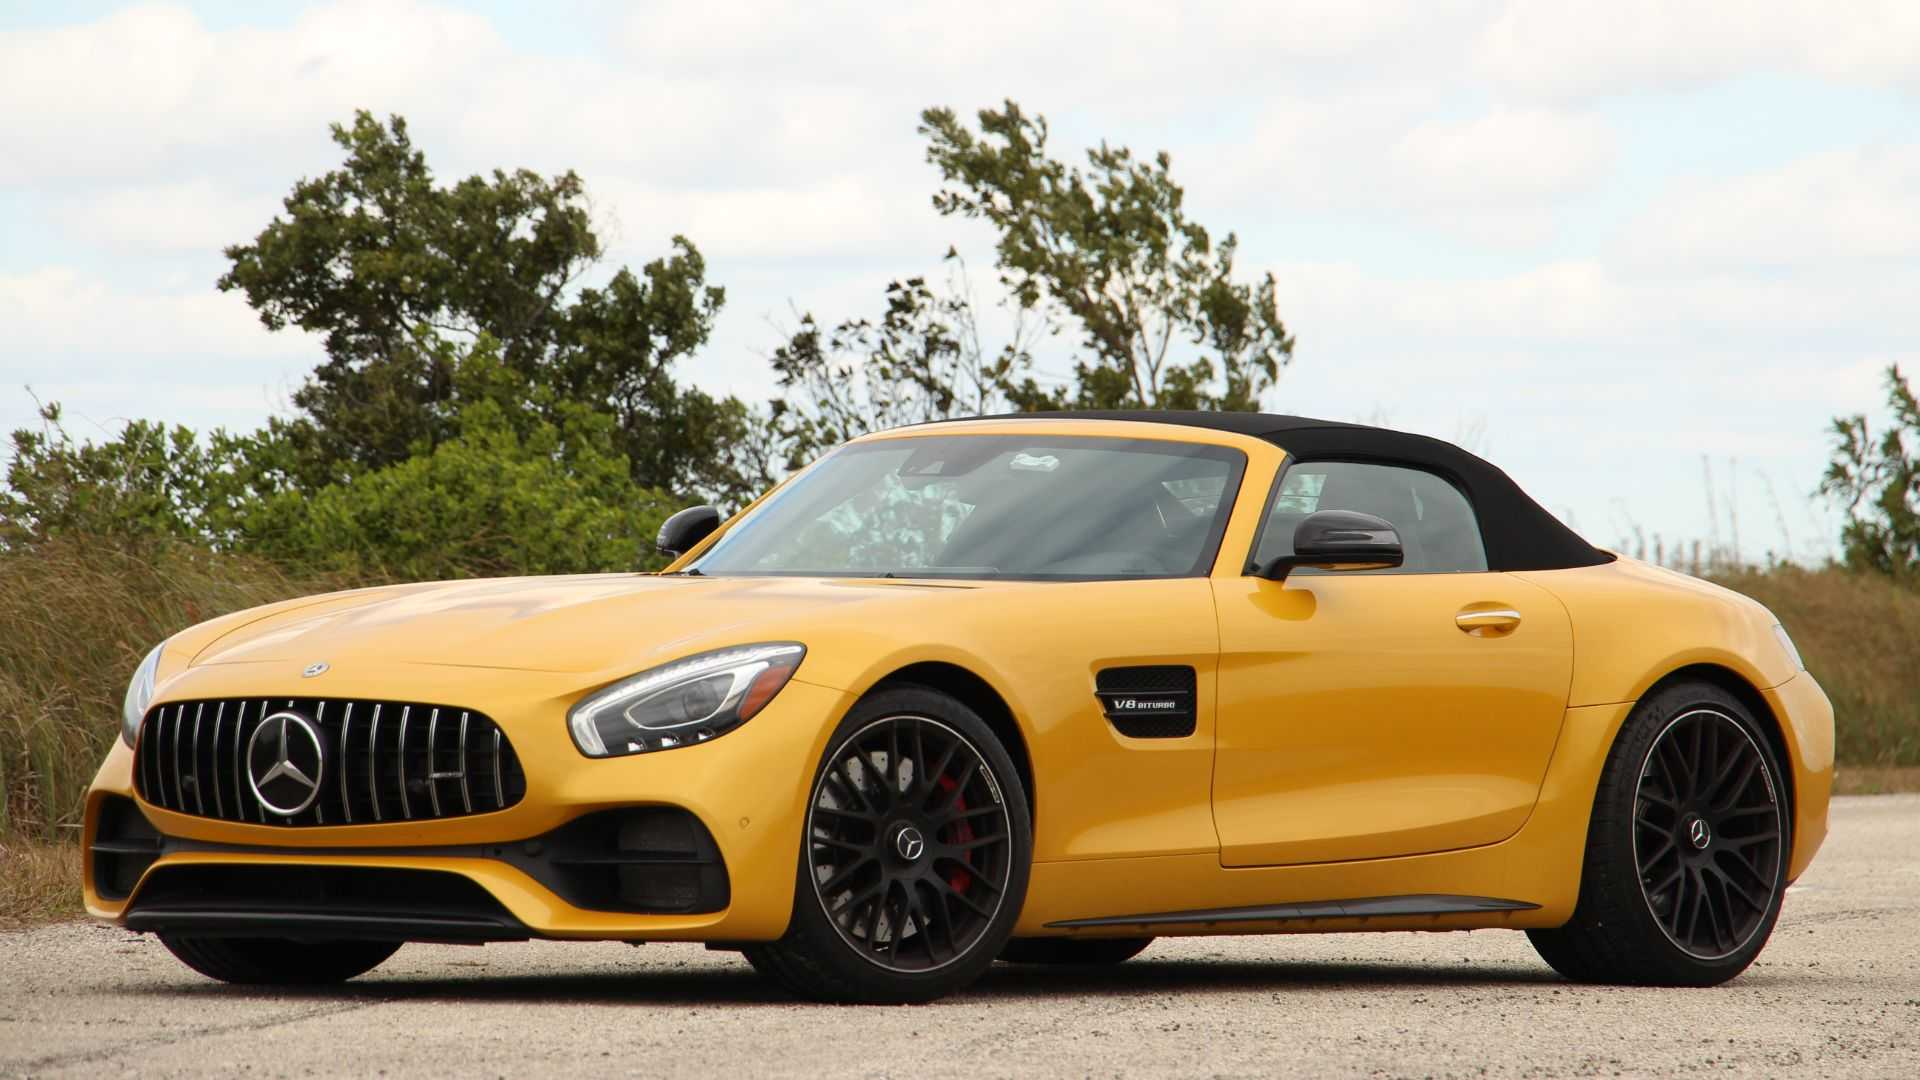 Mercedes Benz Amg >> 2019 Mercedes Amg Gt C Roadster Review Fast Banana